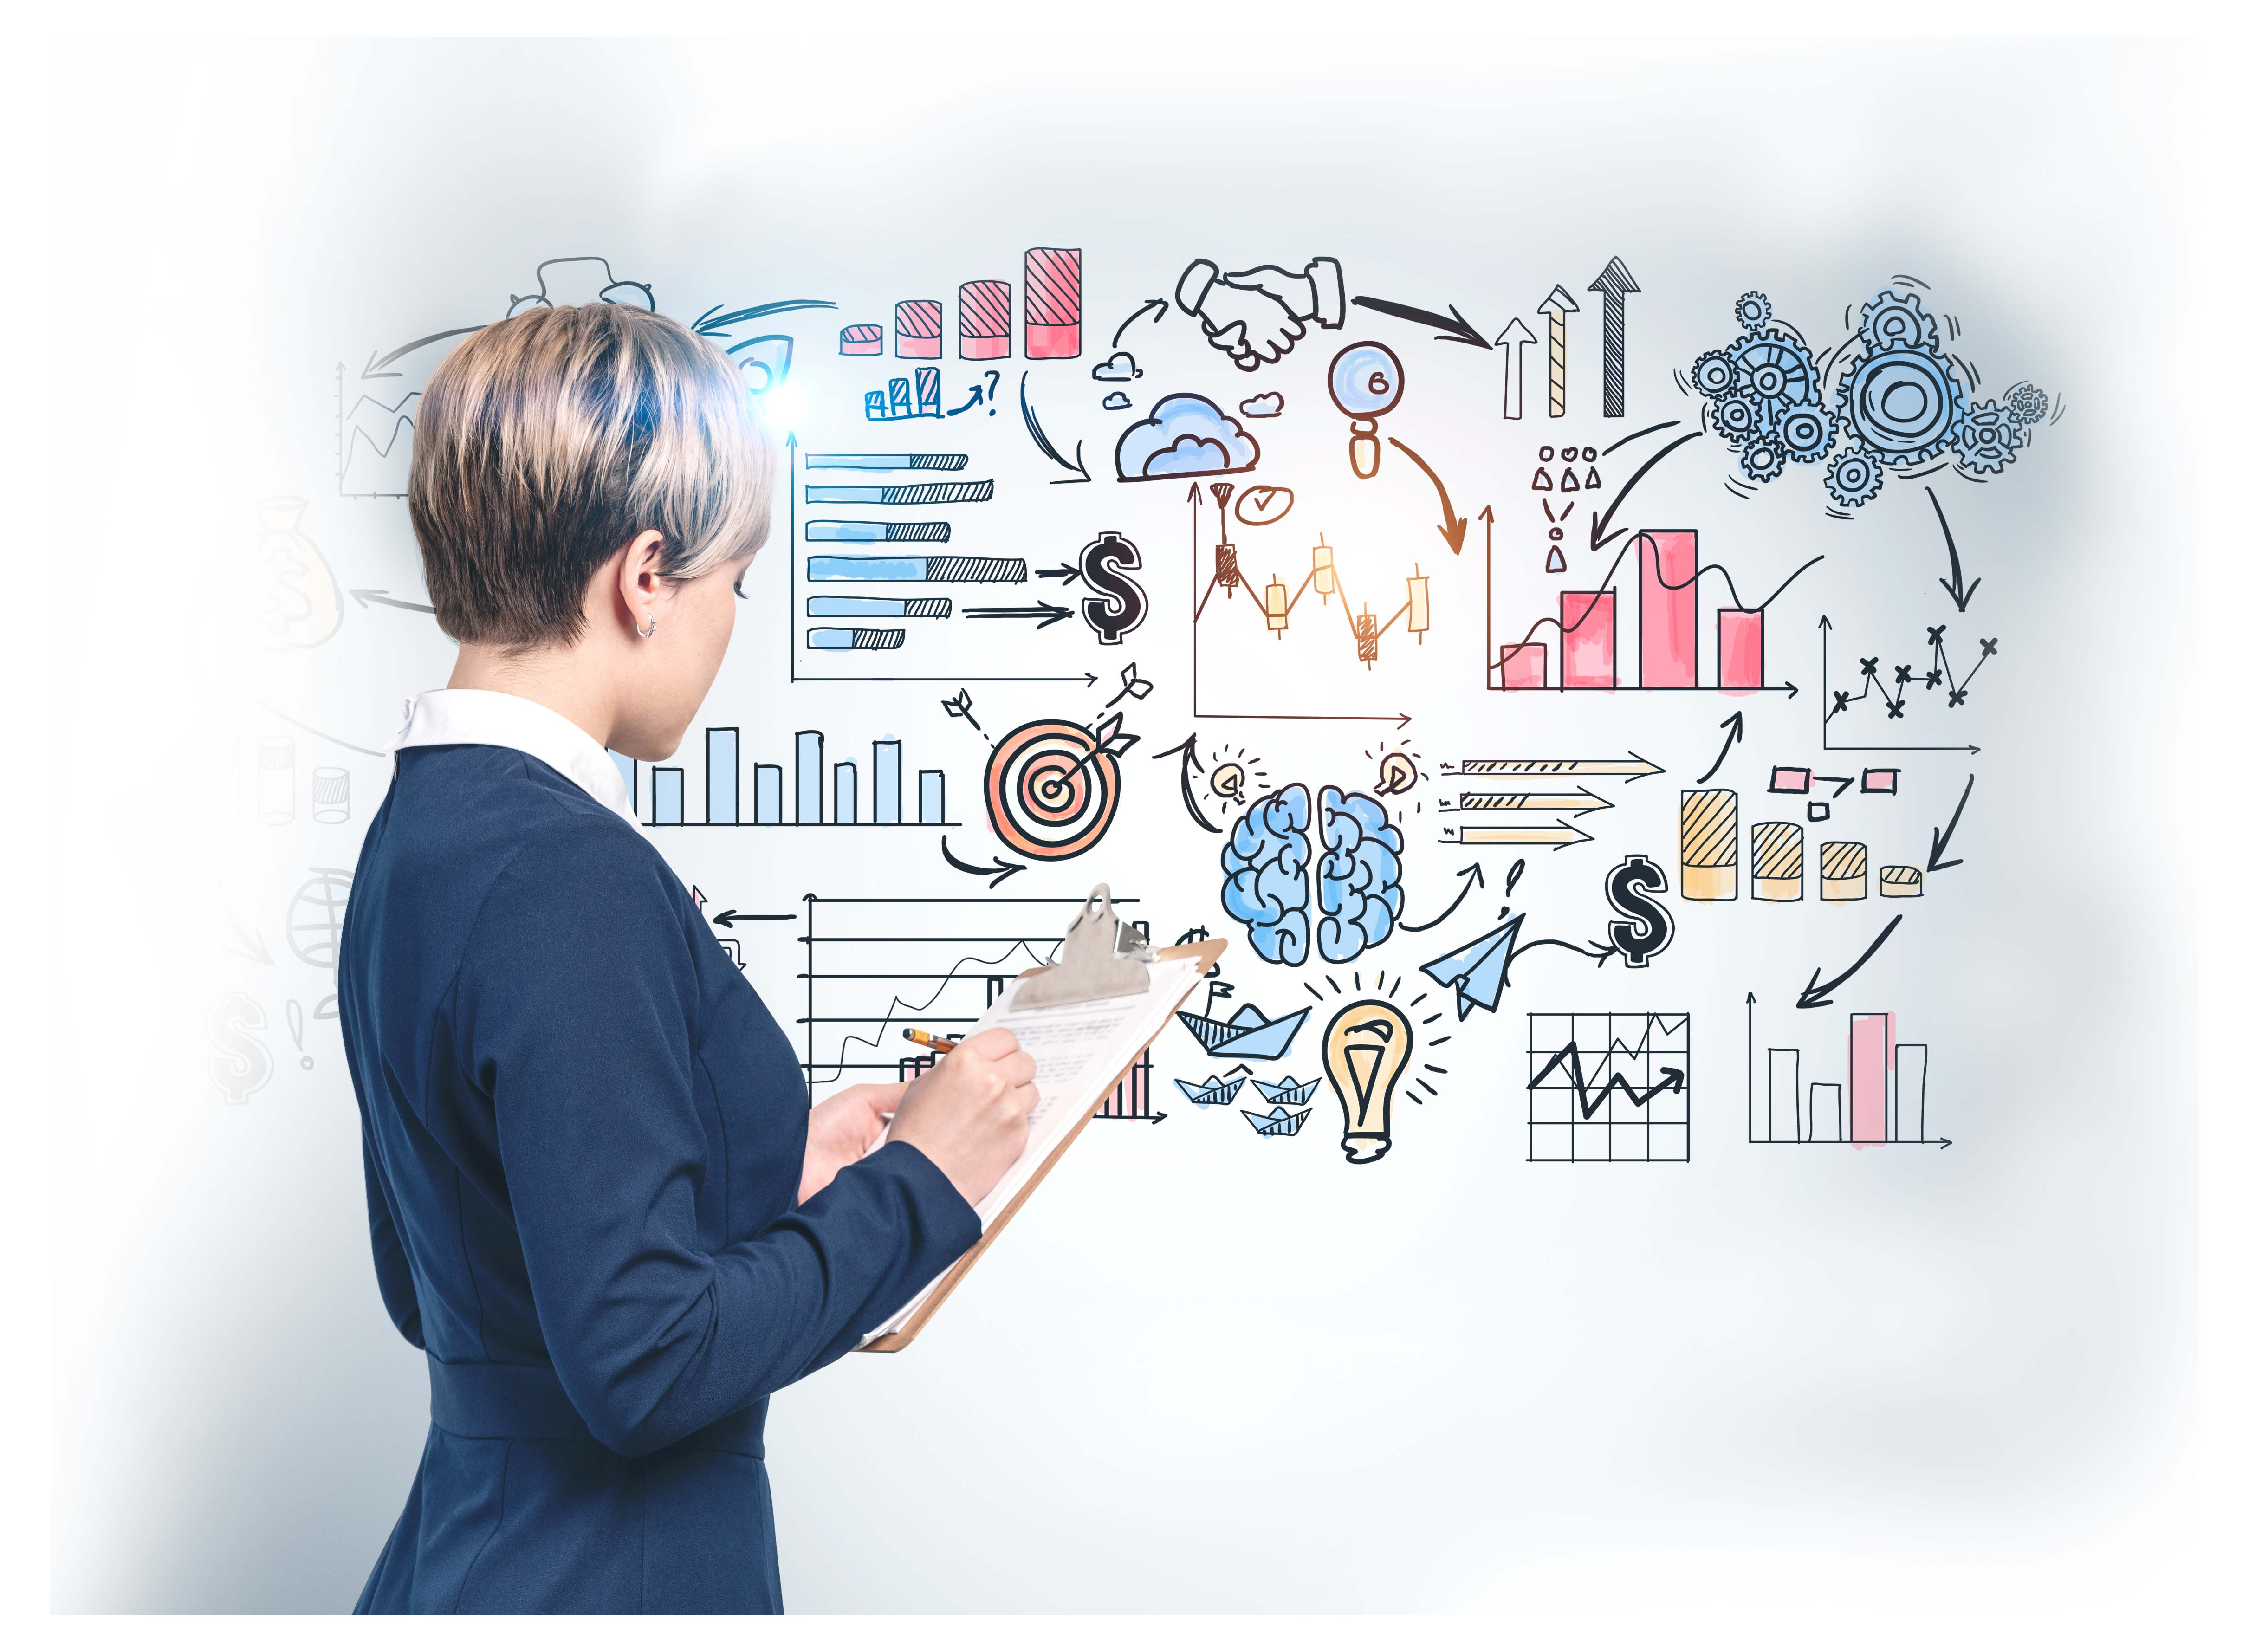 Use of software enhancements to prepare future designers